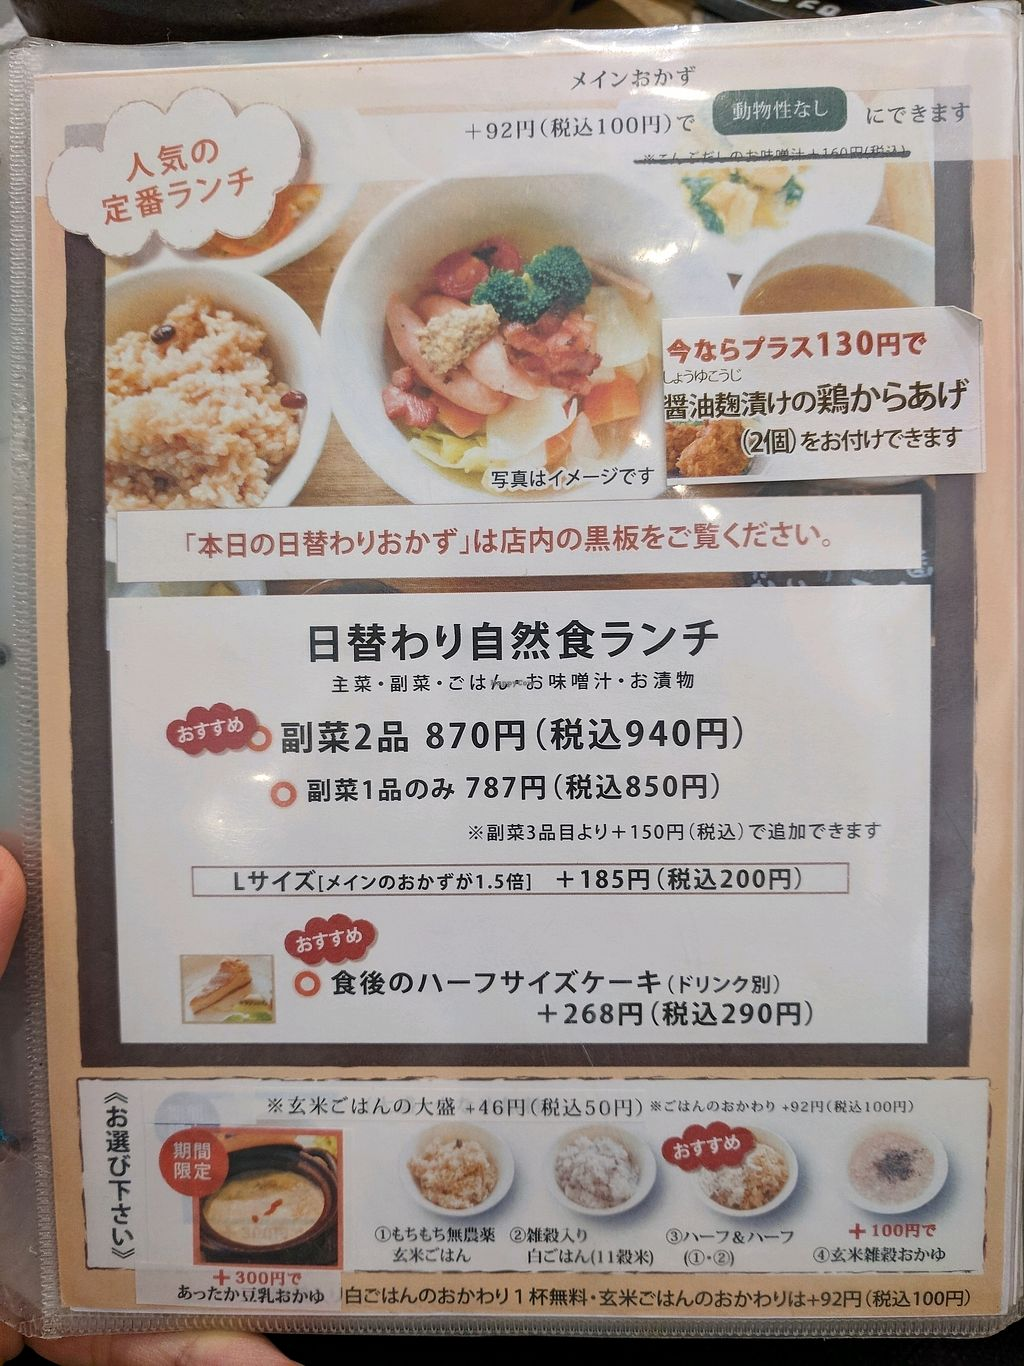 """Photo of Medaka Natural Kitchen   by <a href=""""/members/profile/geoffmatters"""">geoffmatters</a> <br/>""""shizen"""" lunch set. Mention that you are vegan, and don't add the meat karaage for 130 yen. There is another menu card with a side of soy karaage you can add <br/> December 19, 2017  - <a href='/contact/abuse/image/105282/337221'>Report</a>"""